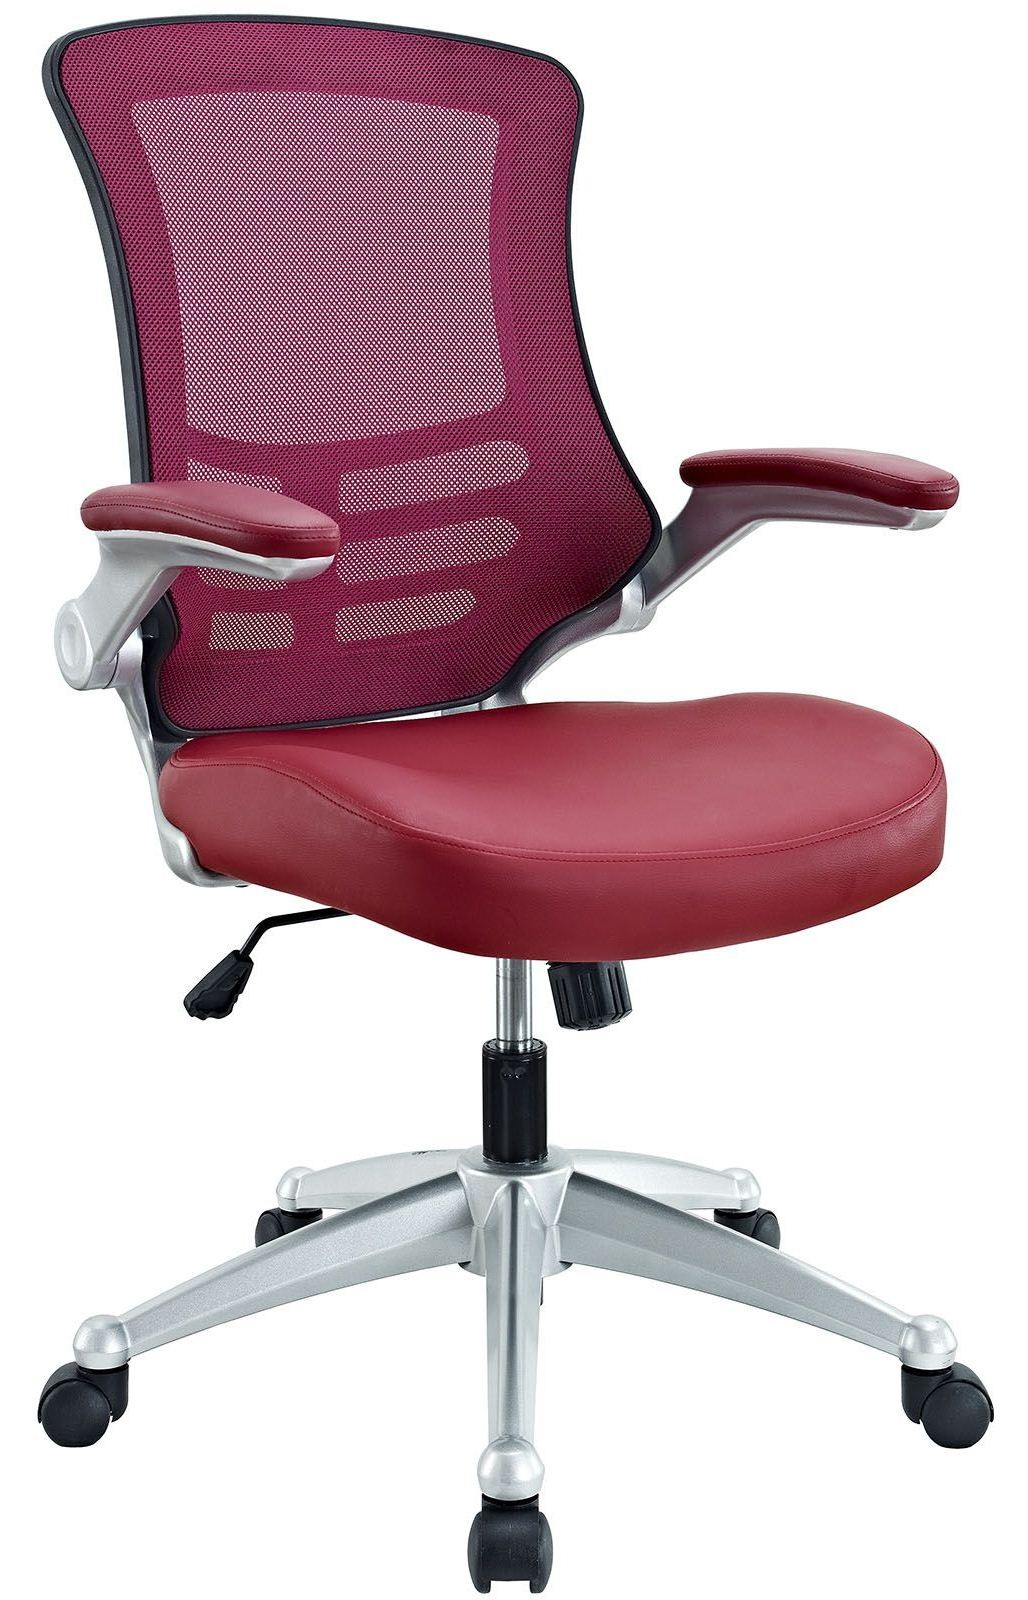 Burgundy Office Chair Attainment Burgundy Office Chair From Renegade Eei 210